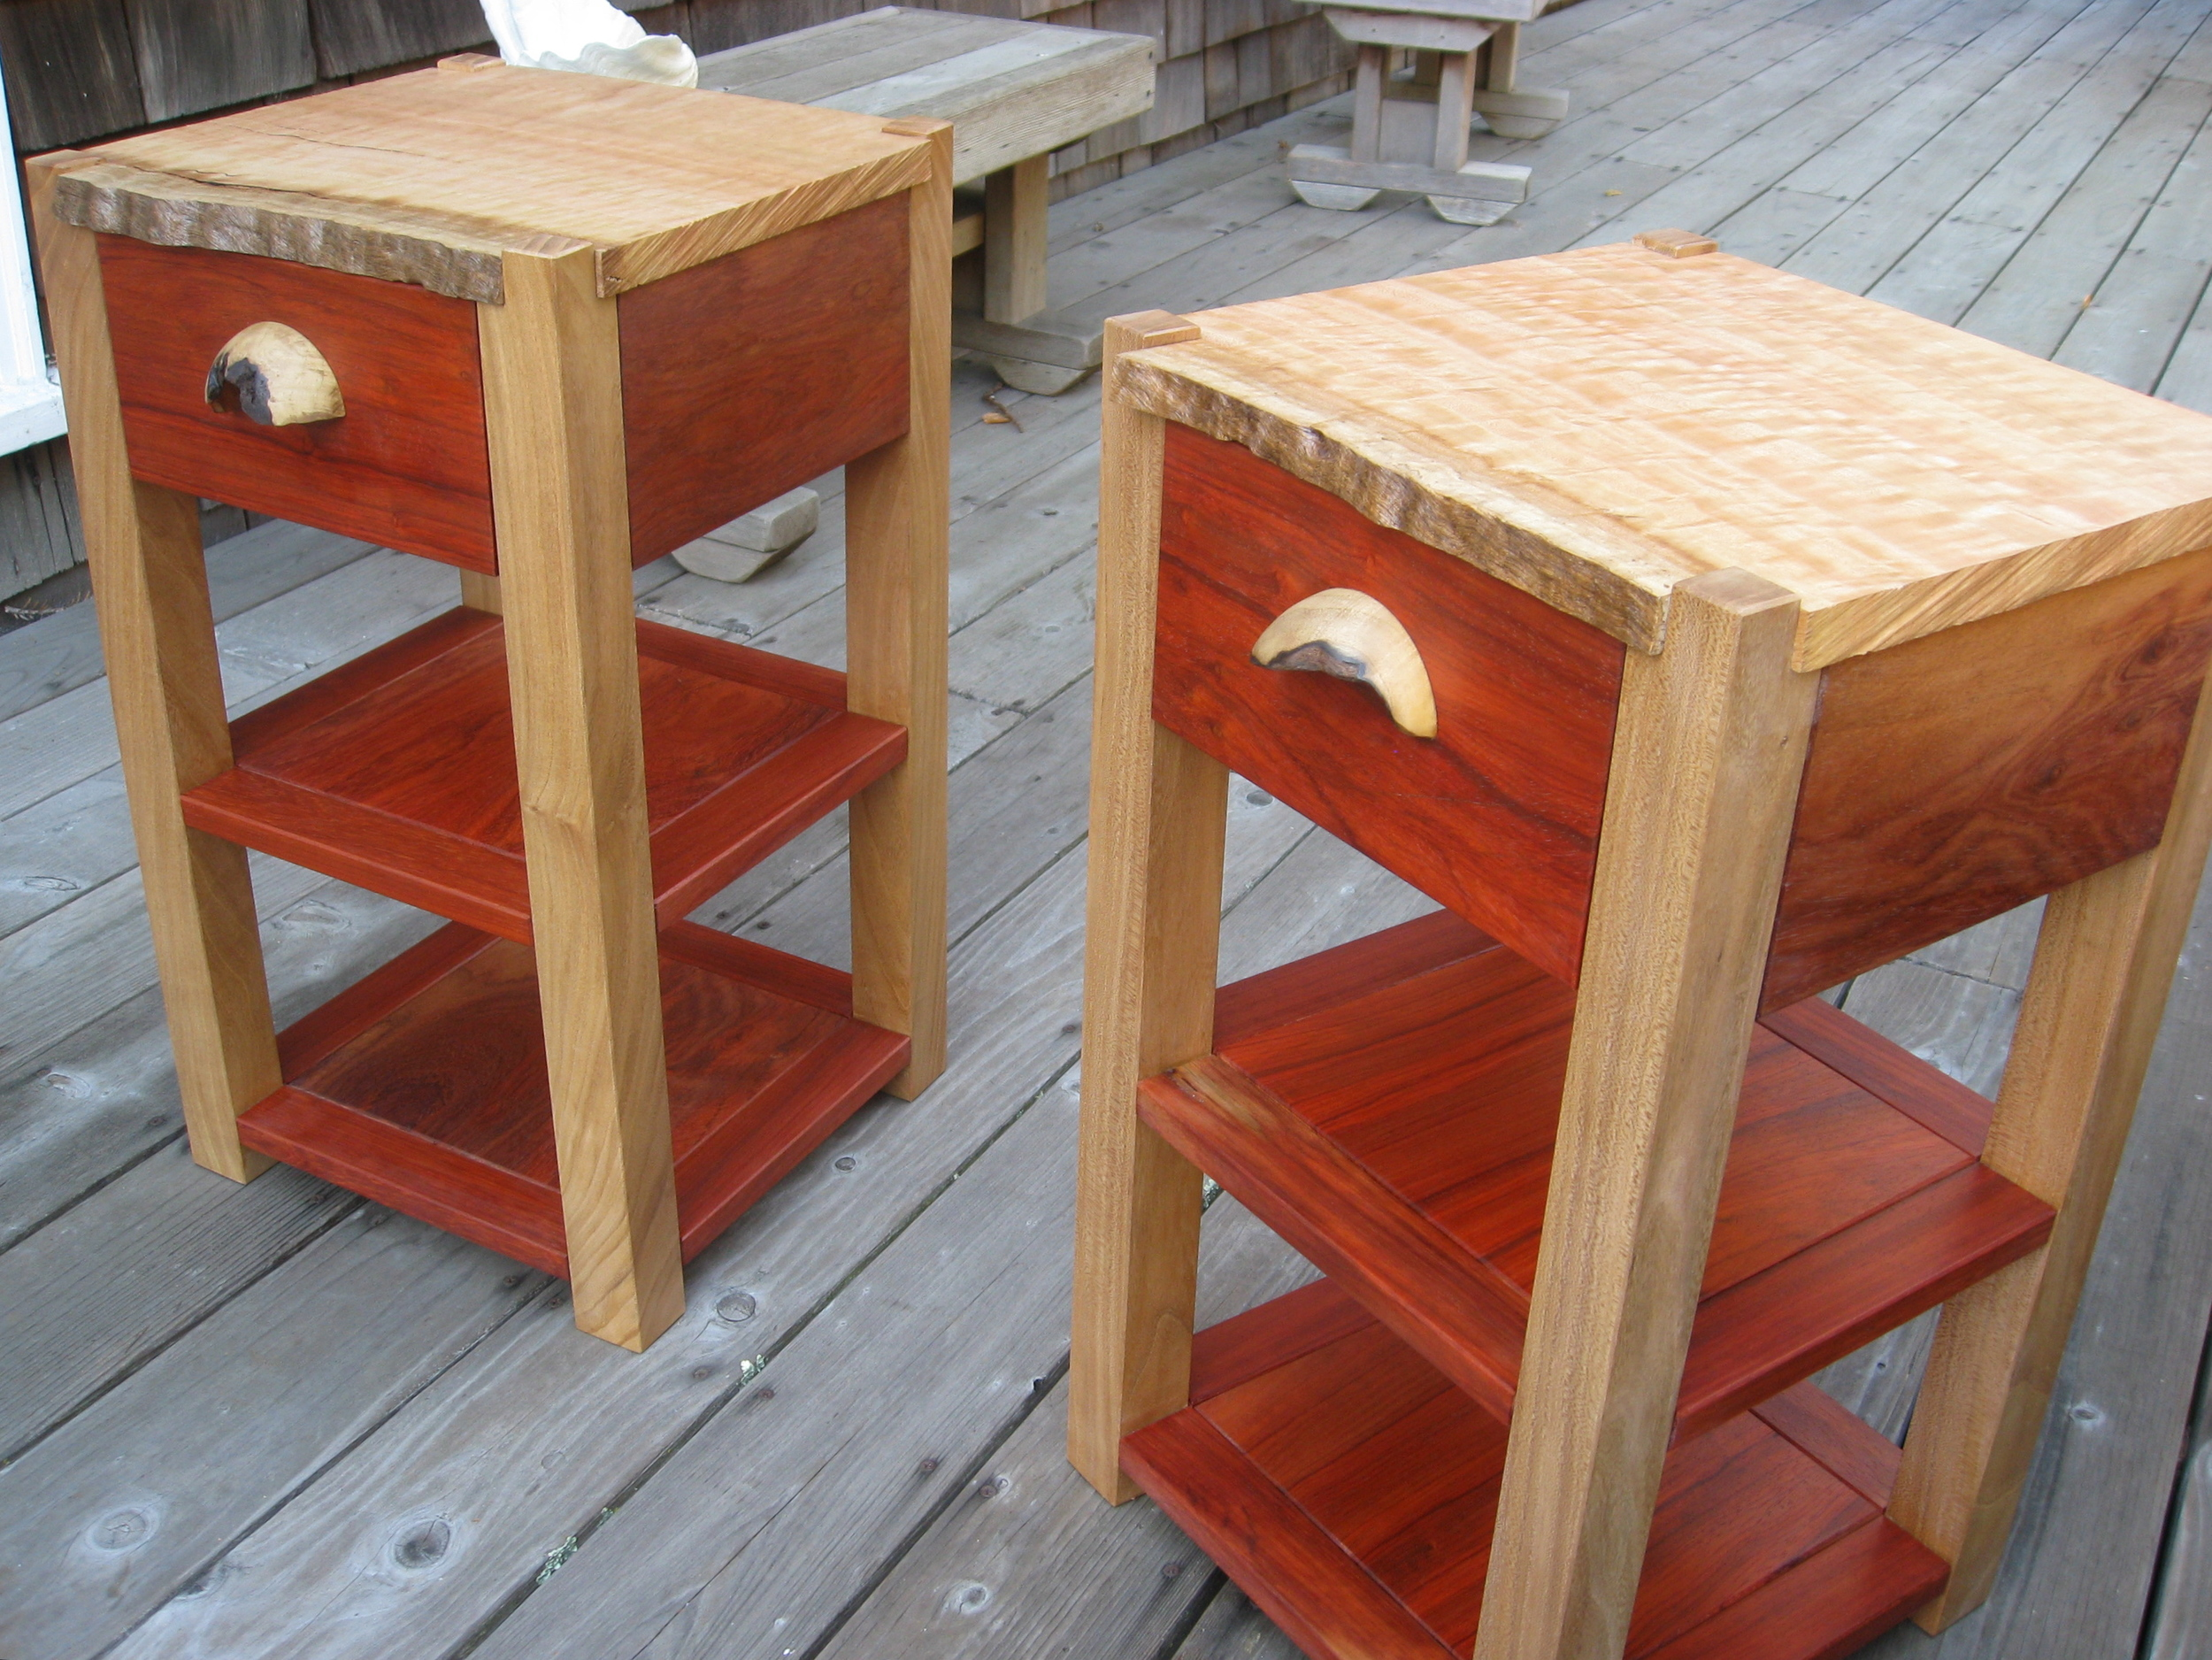 Twin Nightstands. Looking to bring a little color to a wanting bedside, I used Padauk, Elm, Eucalyptus and turned California Bay. To follow the character of the Eucalyptus top and it's natural edge, I used a chain saw to treat the other edges.